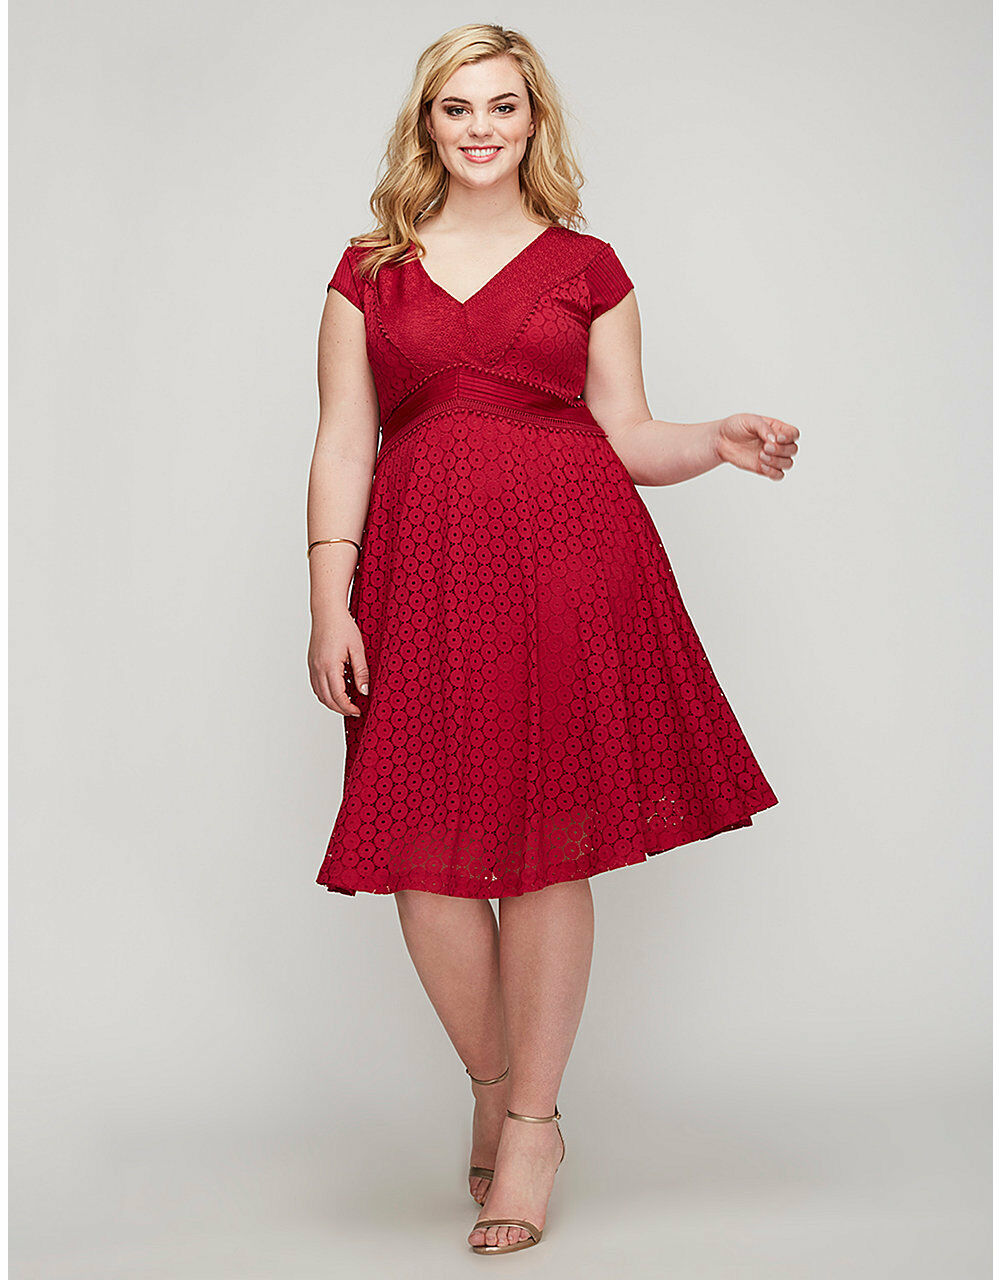 NEW LANE BRYANT PLUS SIZE RED DETAILED LACE FIT & FLARE DRESS SZ 26